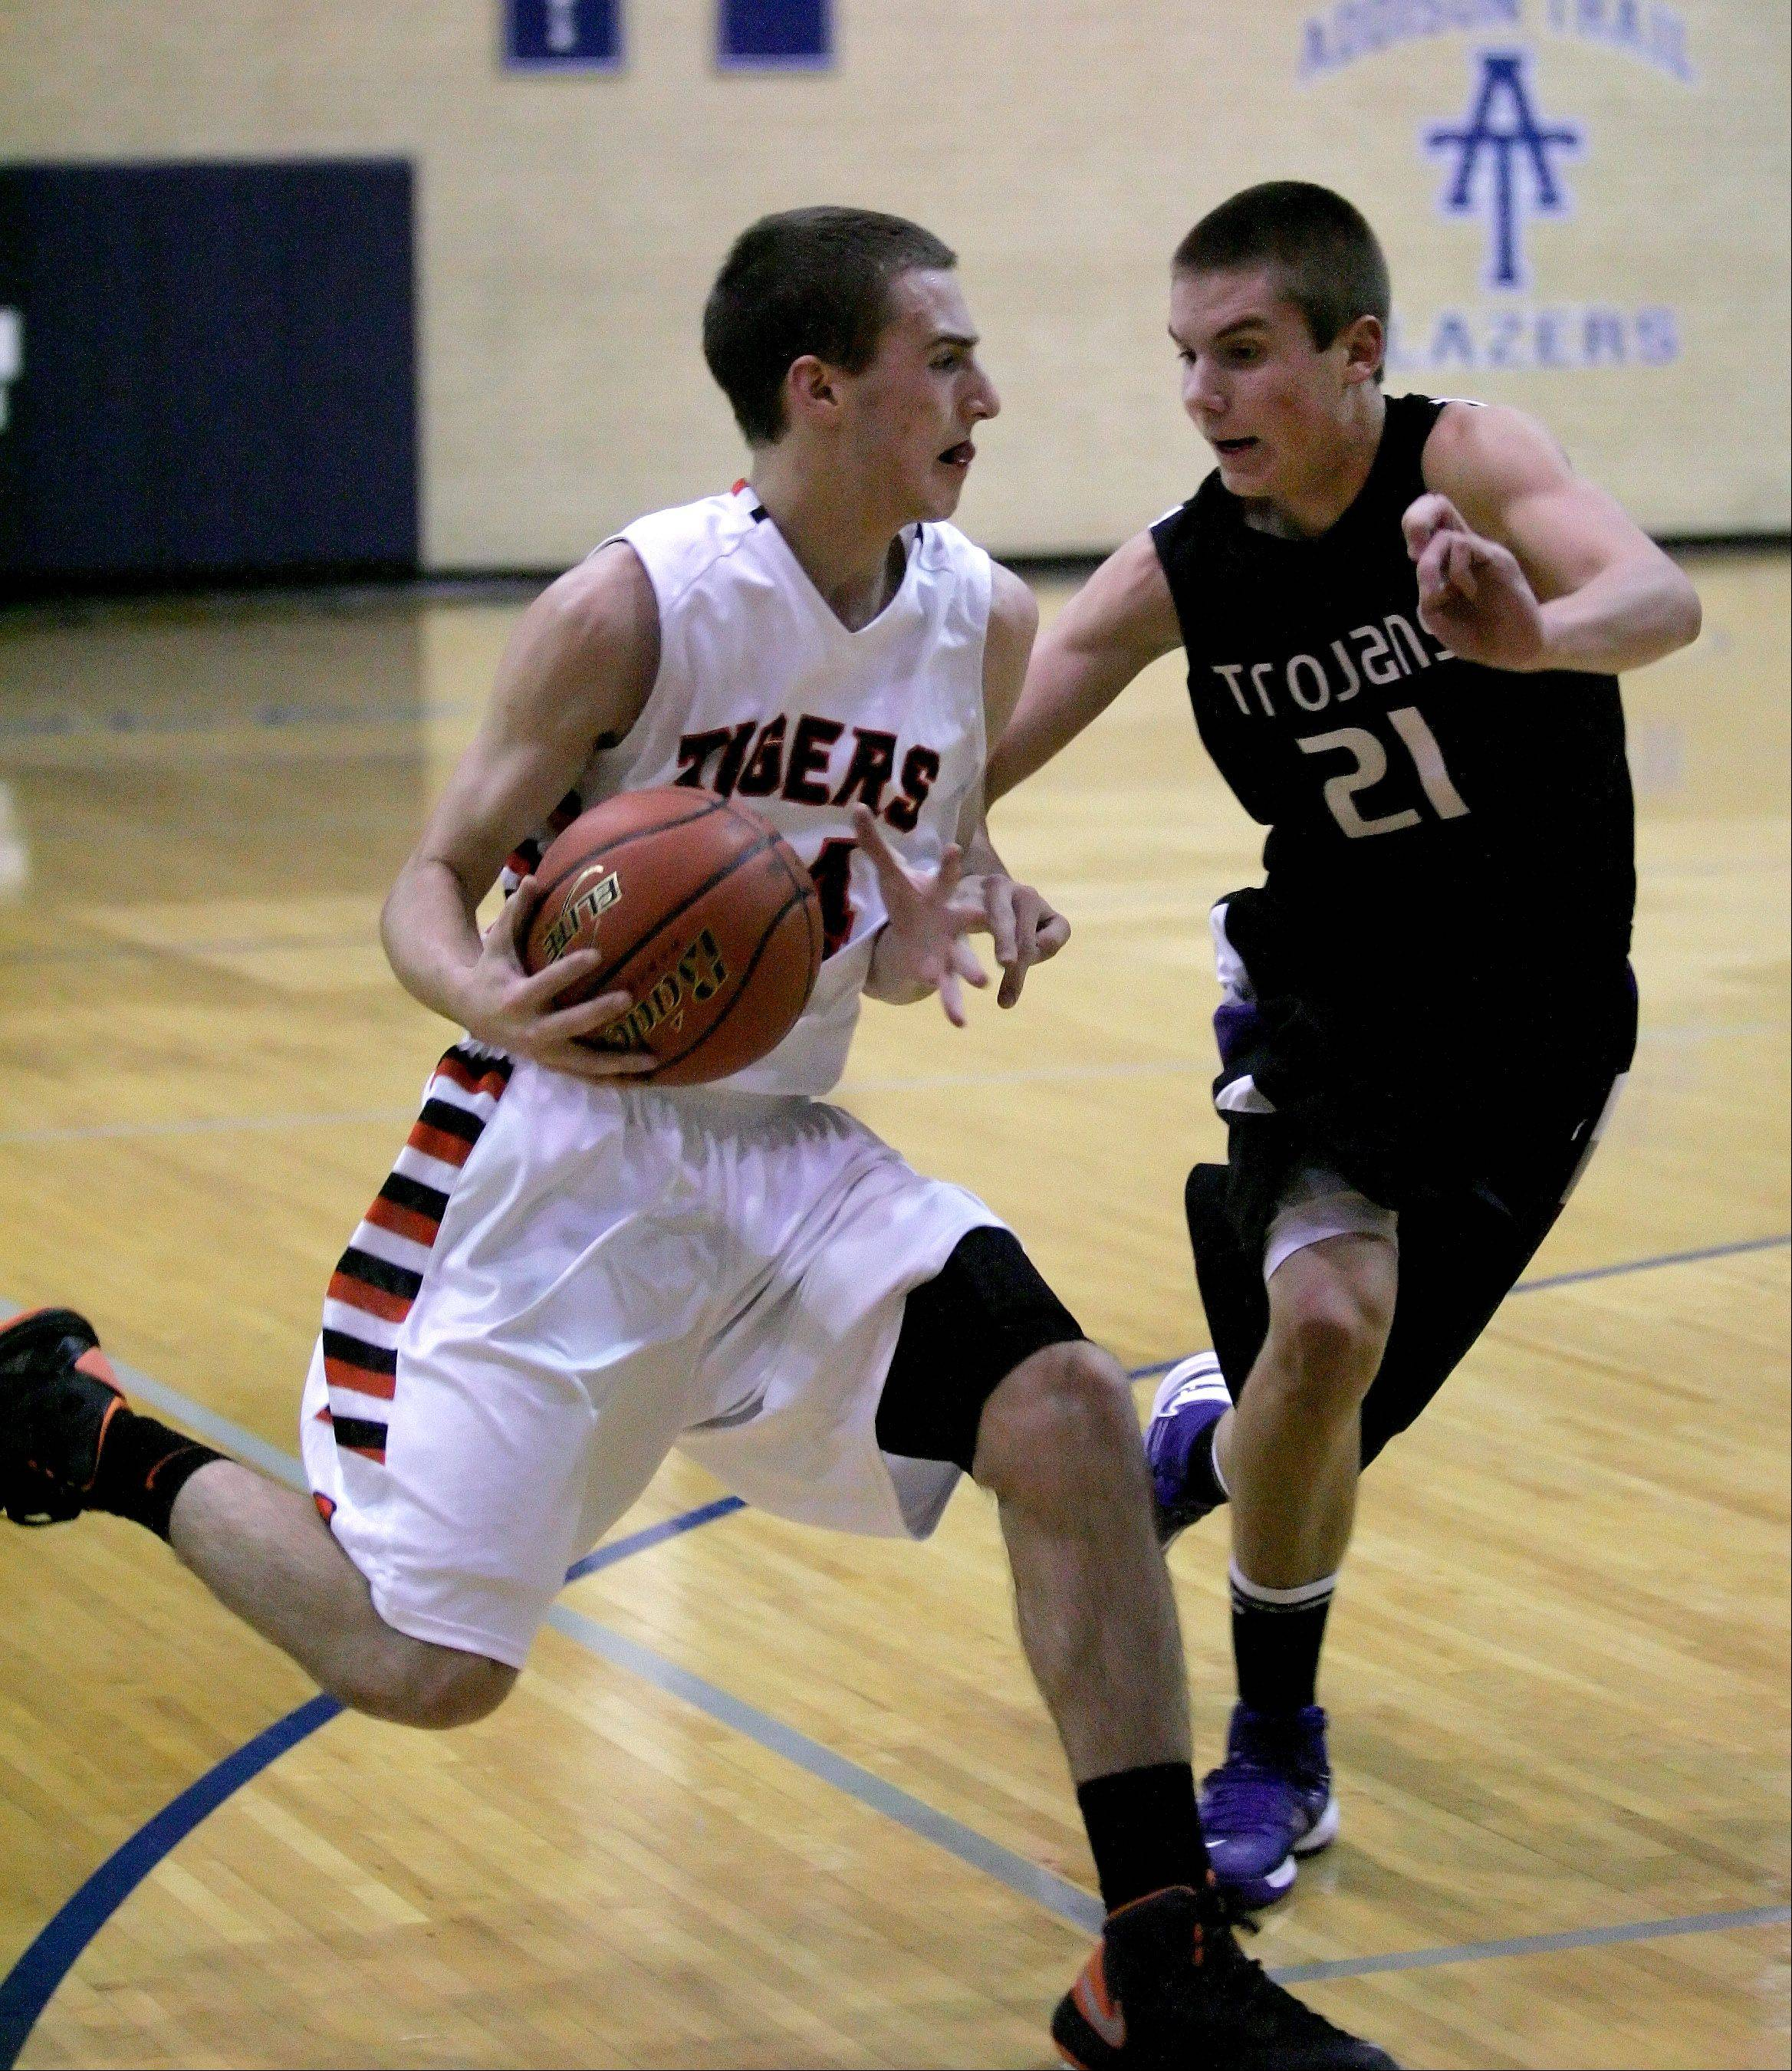 Matt Kienzle of Wheaton Warrenville South, left, moves around David Henson of Downers Grove North .